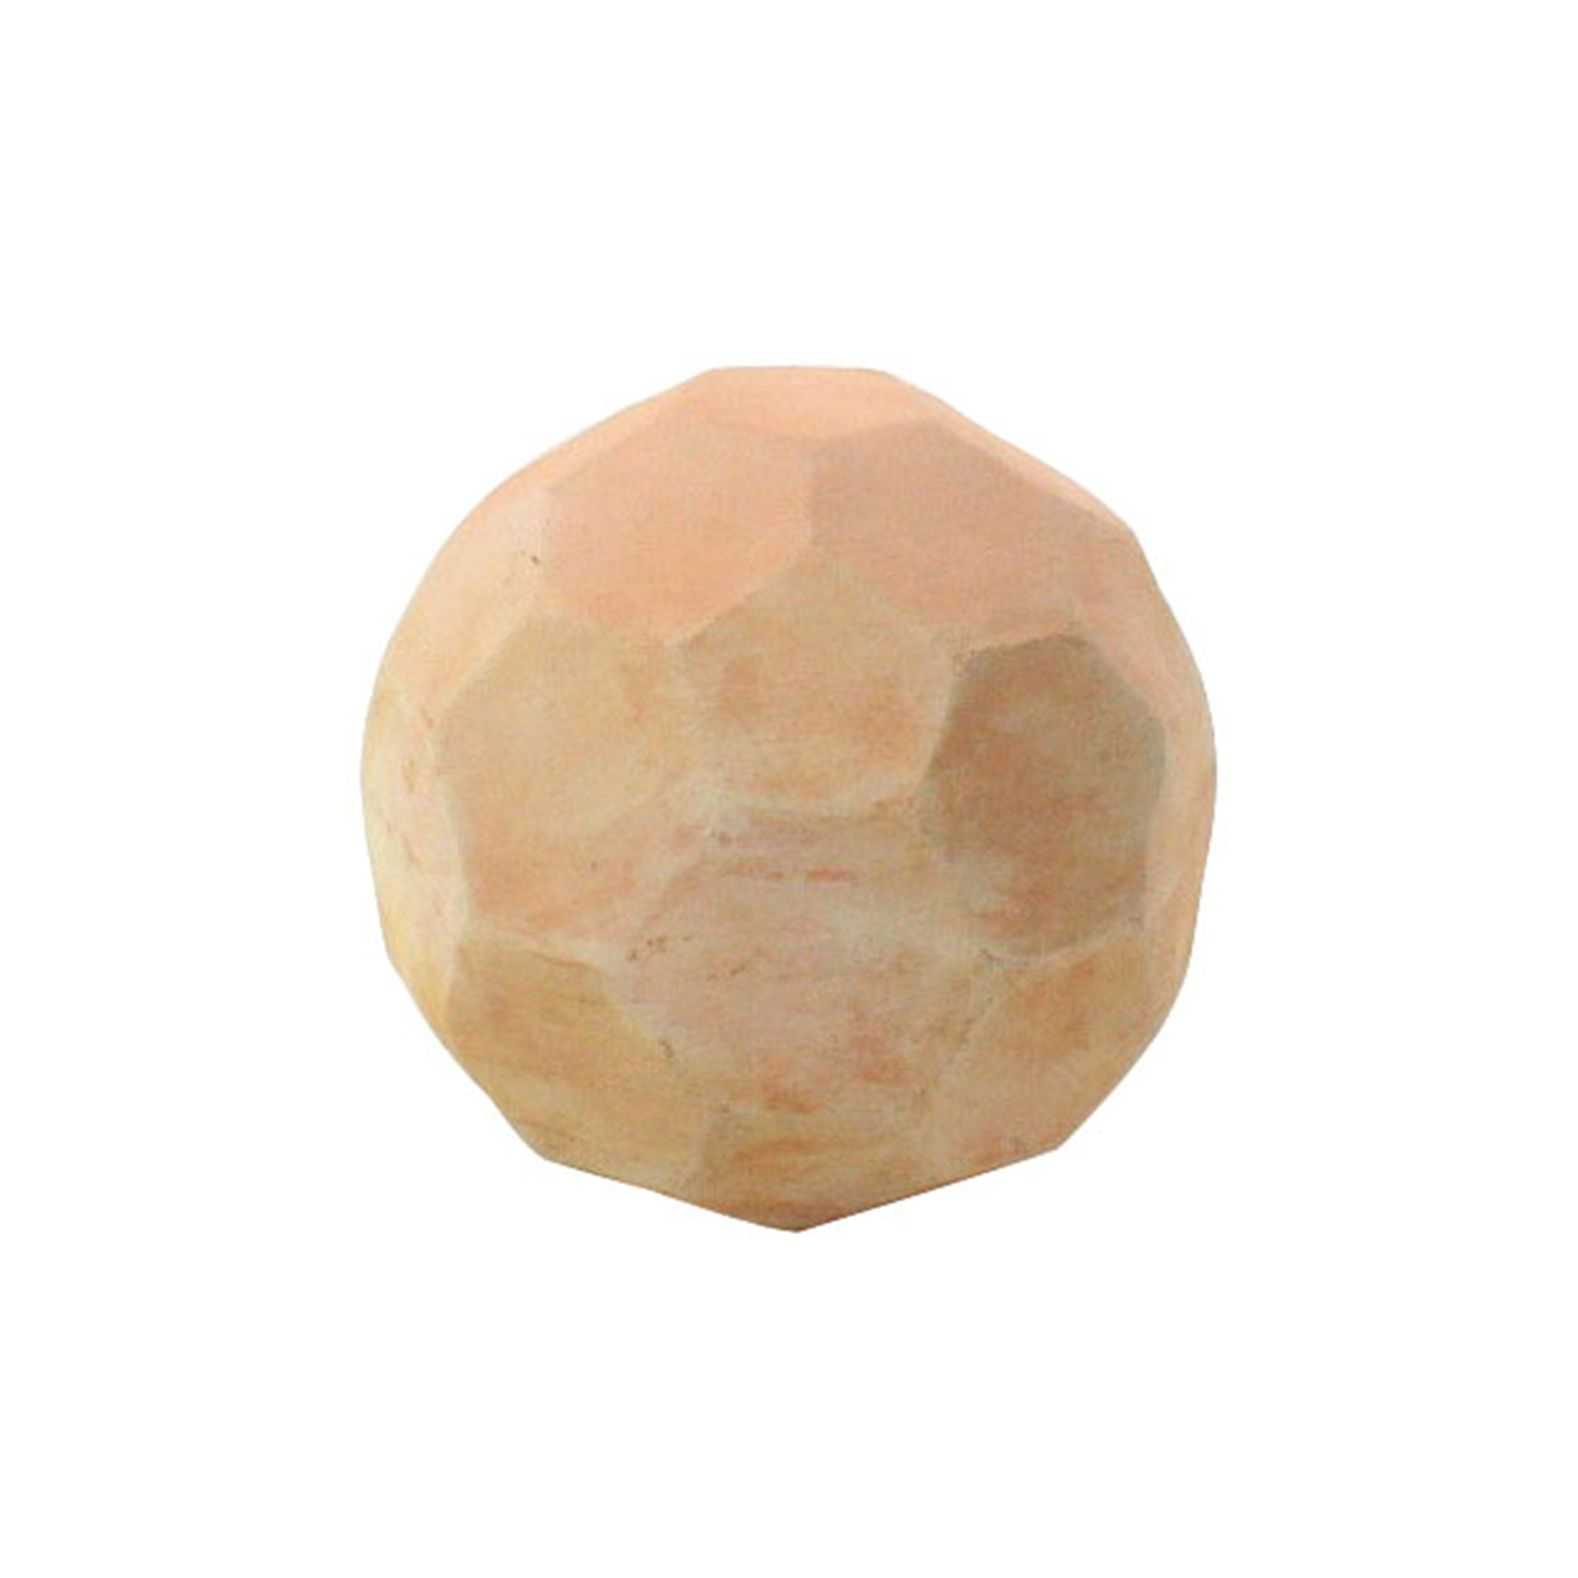 Add an otherworldly touch of character to any chic space with a stunning Mars Terracotta Faceted Sphere. The faceted face of this delightful decorative addition is beautifully hued and features charmin...  Find the Mars Terracotta Faceted Sphere, as seen in the Home Sweet Homesteader in Joshua Tree Collection at http://dotandbo.com/collections/home-sweet-homesteader-in-joshua-tree?utm_source=pinterest&utm_medium=organic&db_sku=109221